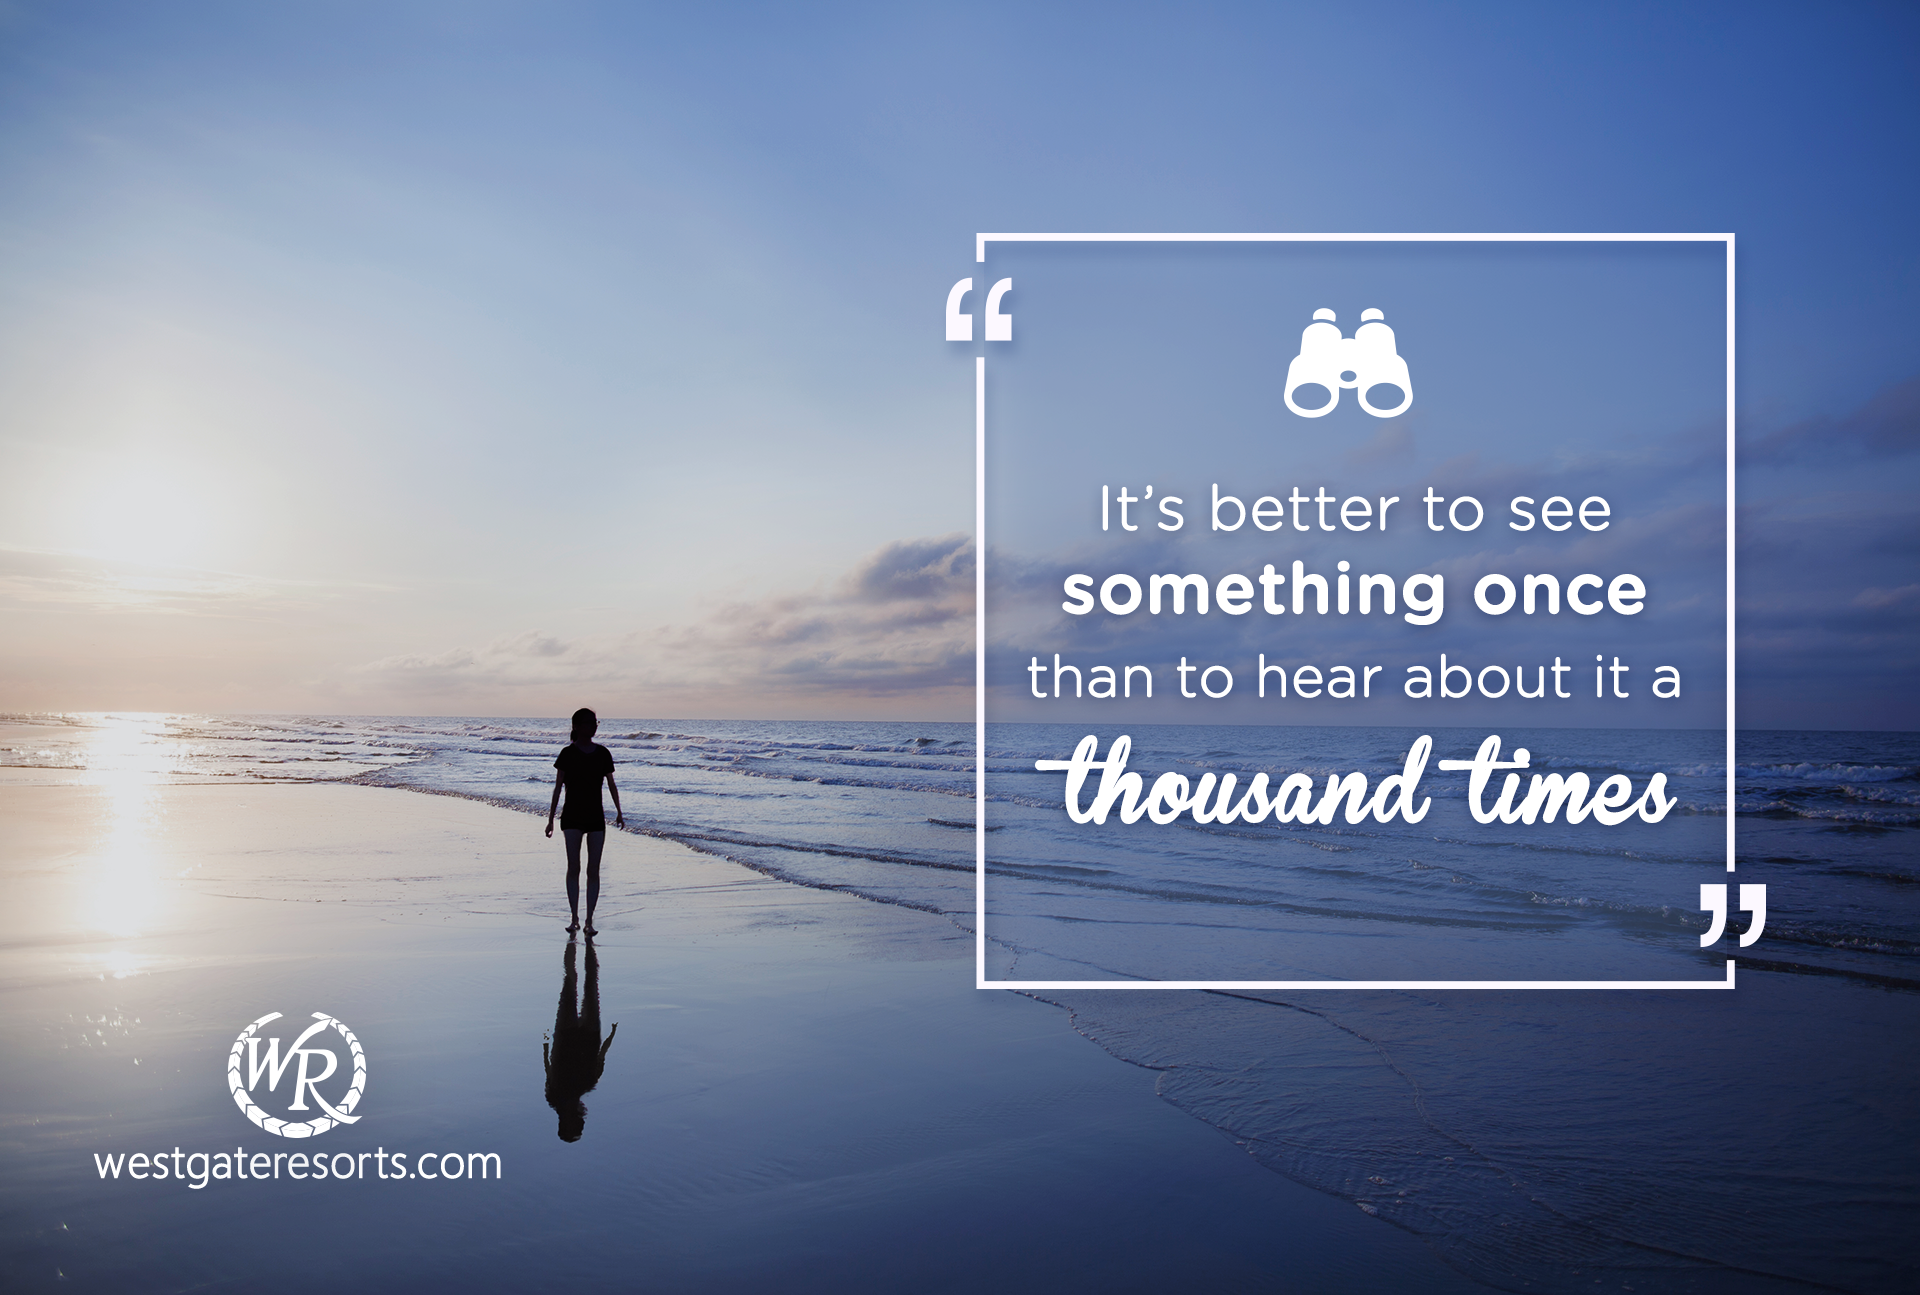 It's Better to See Something Once Than to Hear About It a Thousand Times. | Travel Motivational Quotes | Quotes About Travel